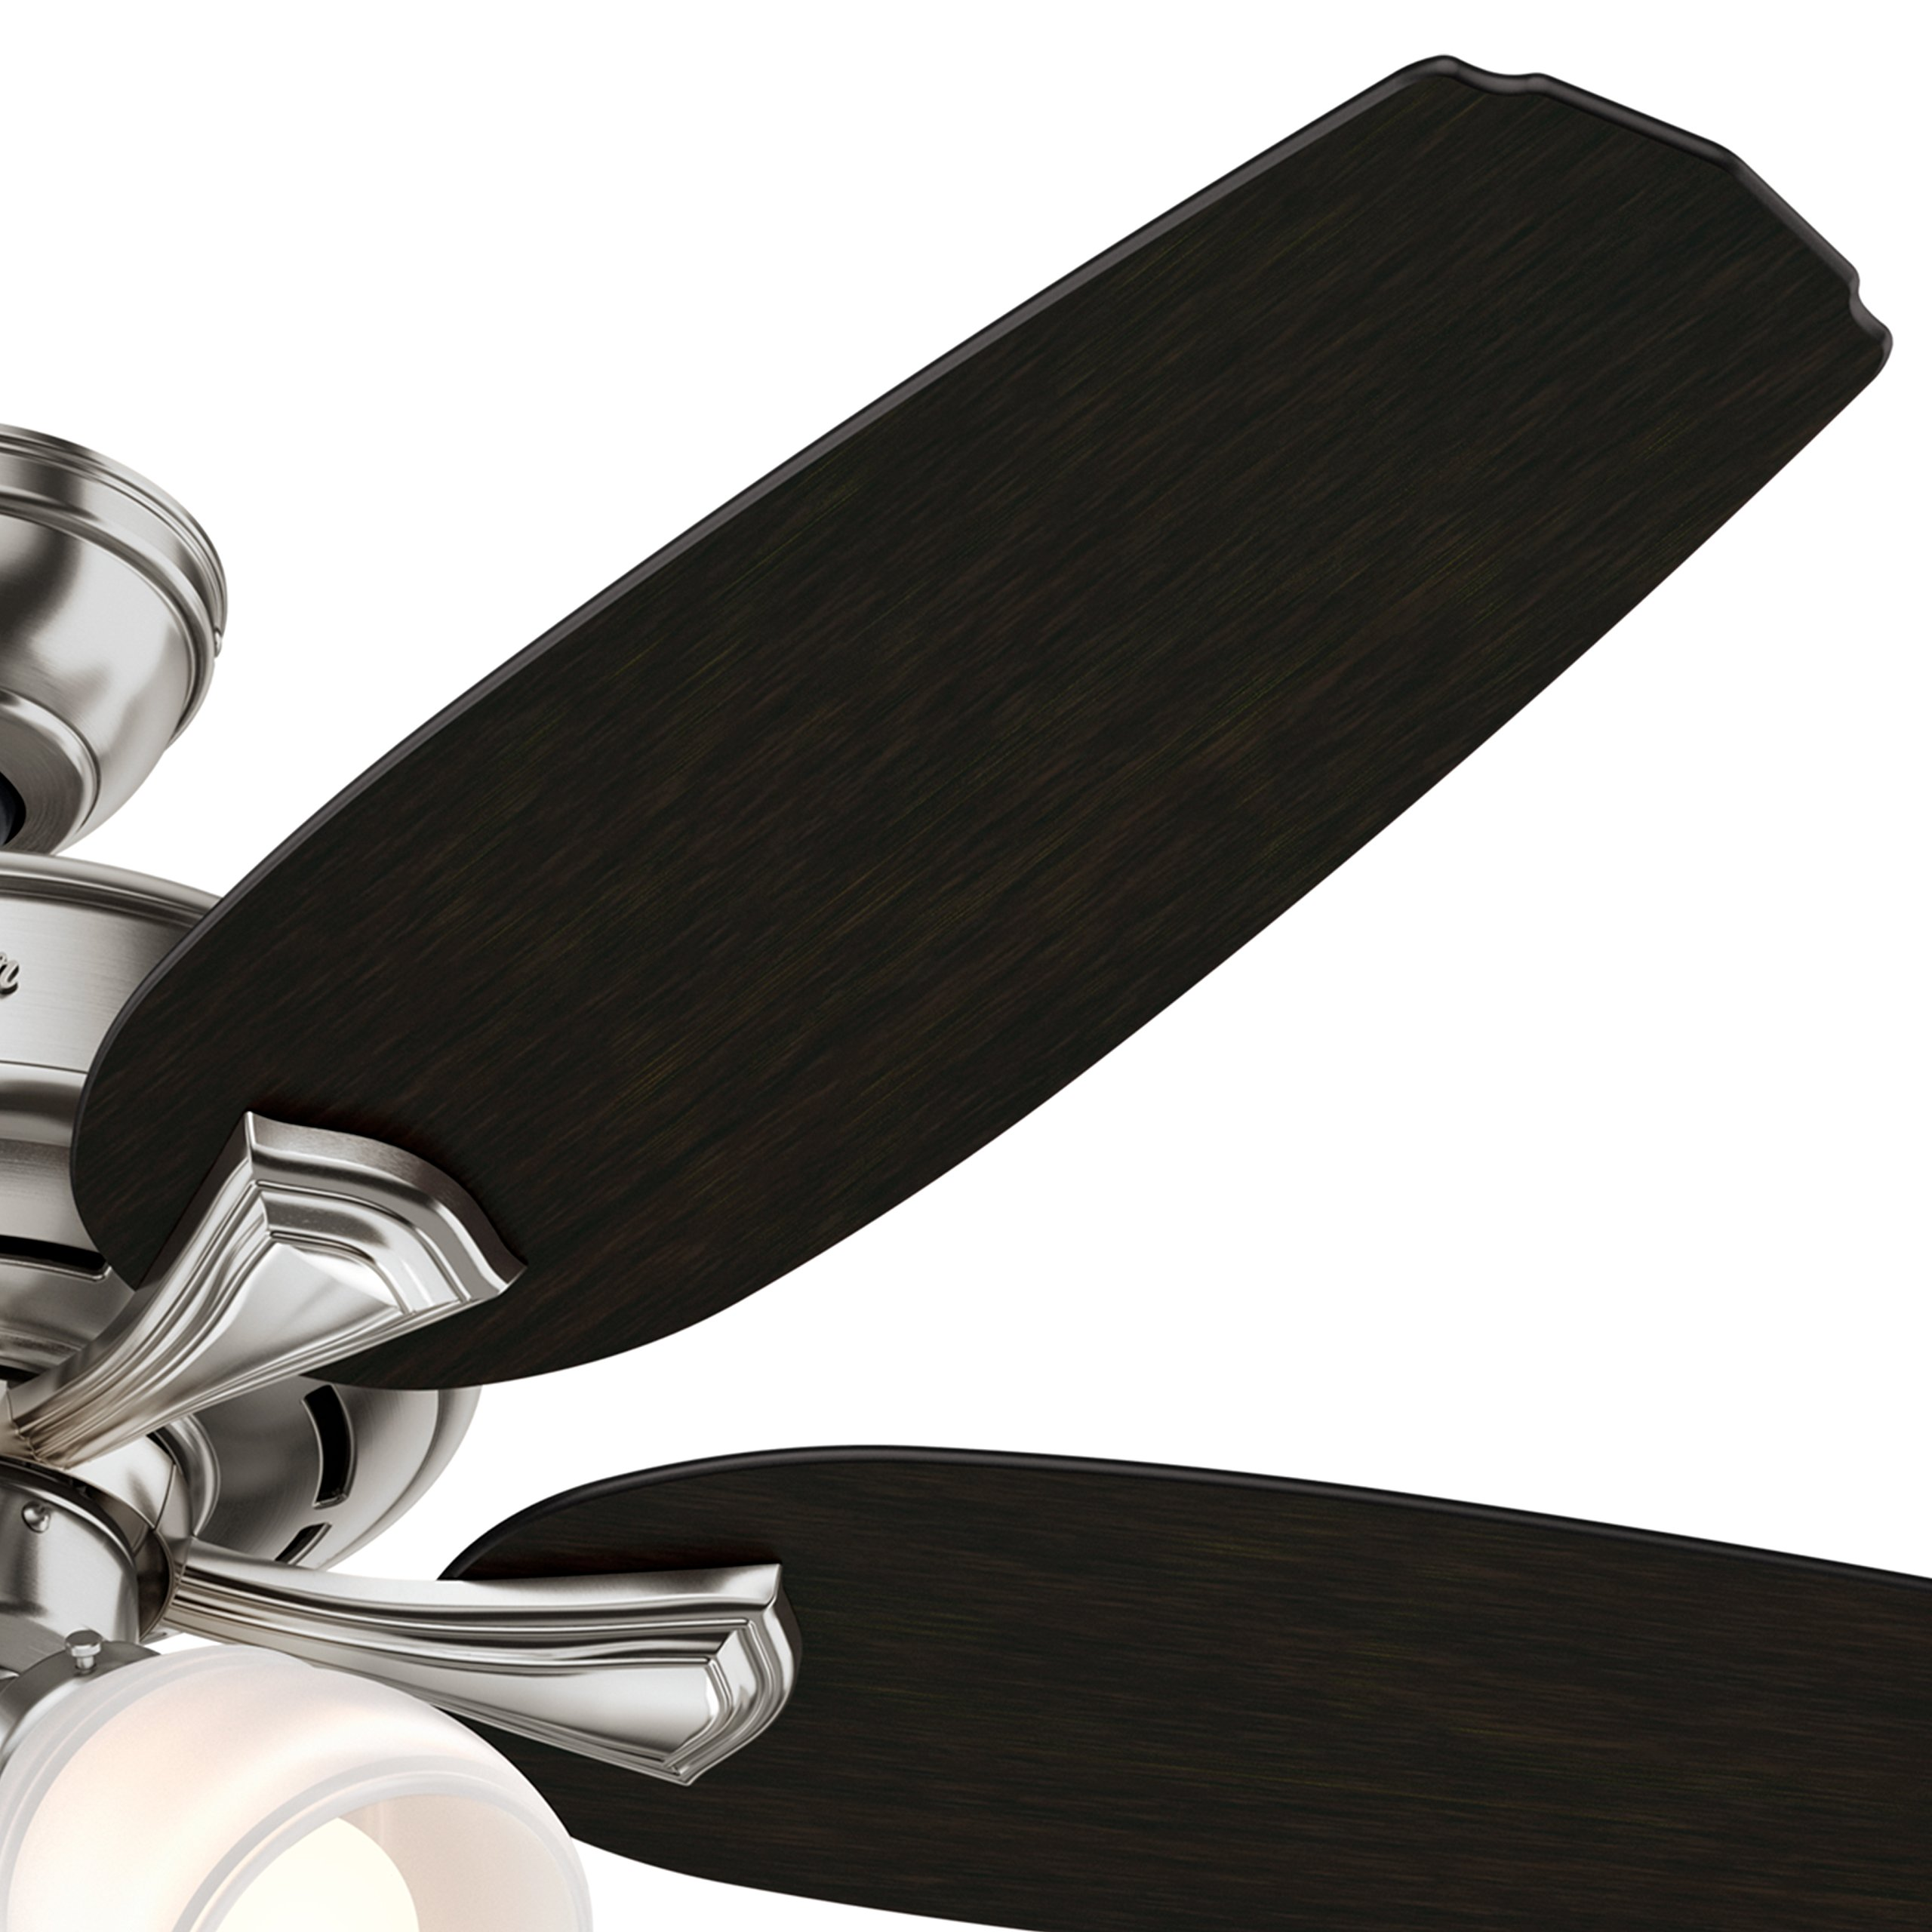 Hunter 52 in. Ceiling Fan with 4 LED Lights in Brushed Nickel (Certified Refurbished) by Hunter Fan Company (Image #5)